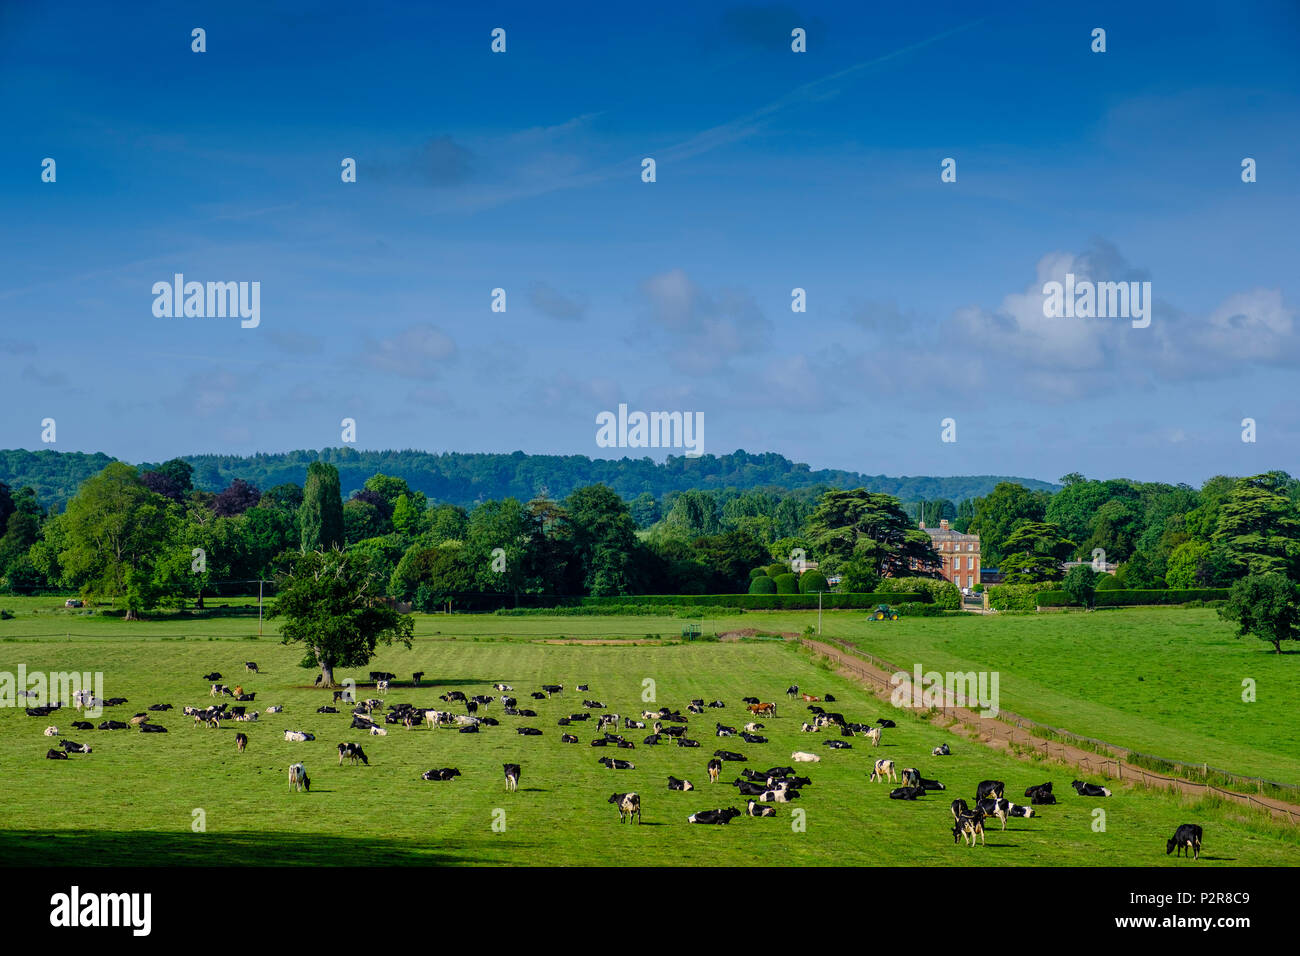 Somerset. 15th Jun, 2018. UK Weather: Sunshine over Milborne Port in Somerset with Ven House built in the Queen Anne architectural style; the A30 road runs in front. Credit: David Hansford Photography/Alamy Live News Stock Photo